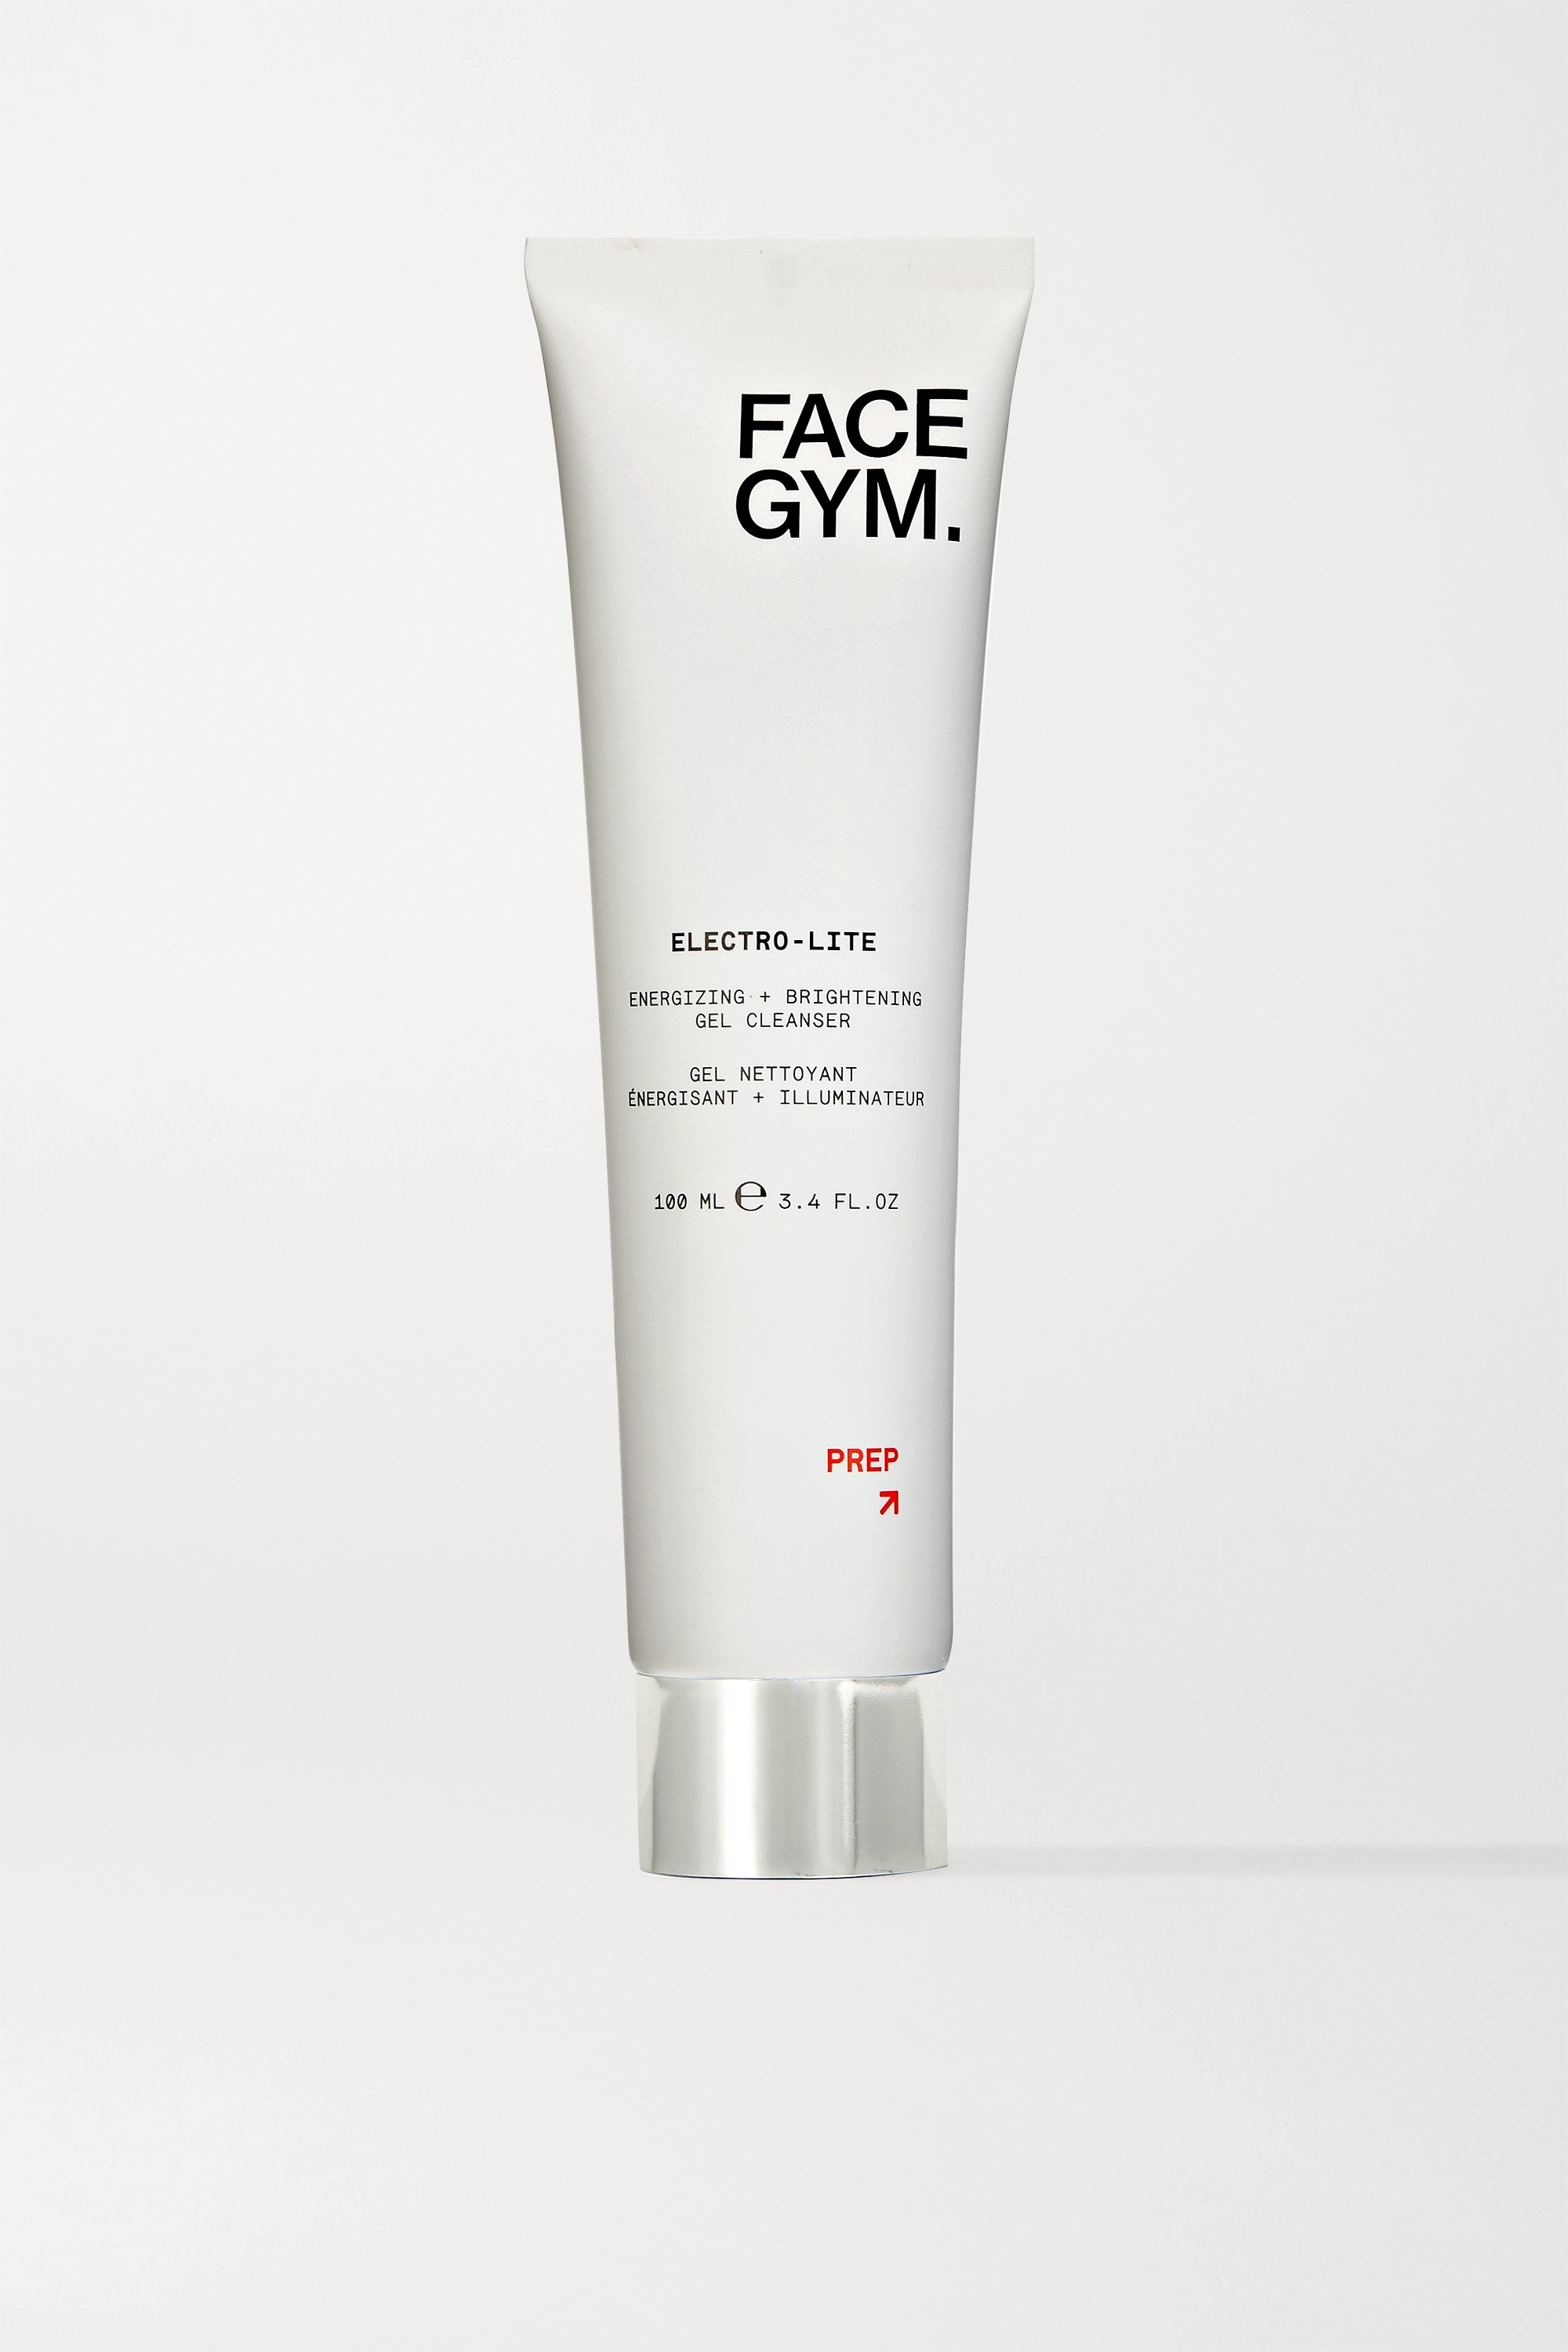 FaceGym Electro-lite Energizing + Brightening Gel Cleanser, 100 ml – Cleanser